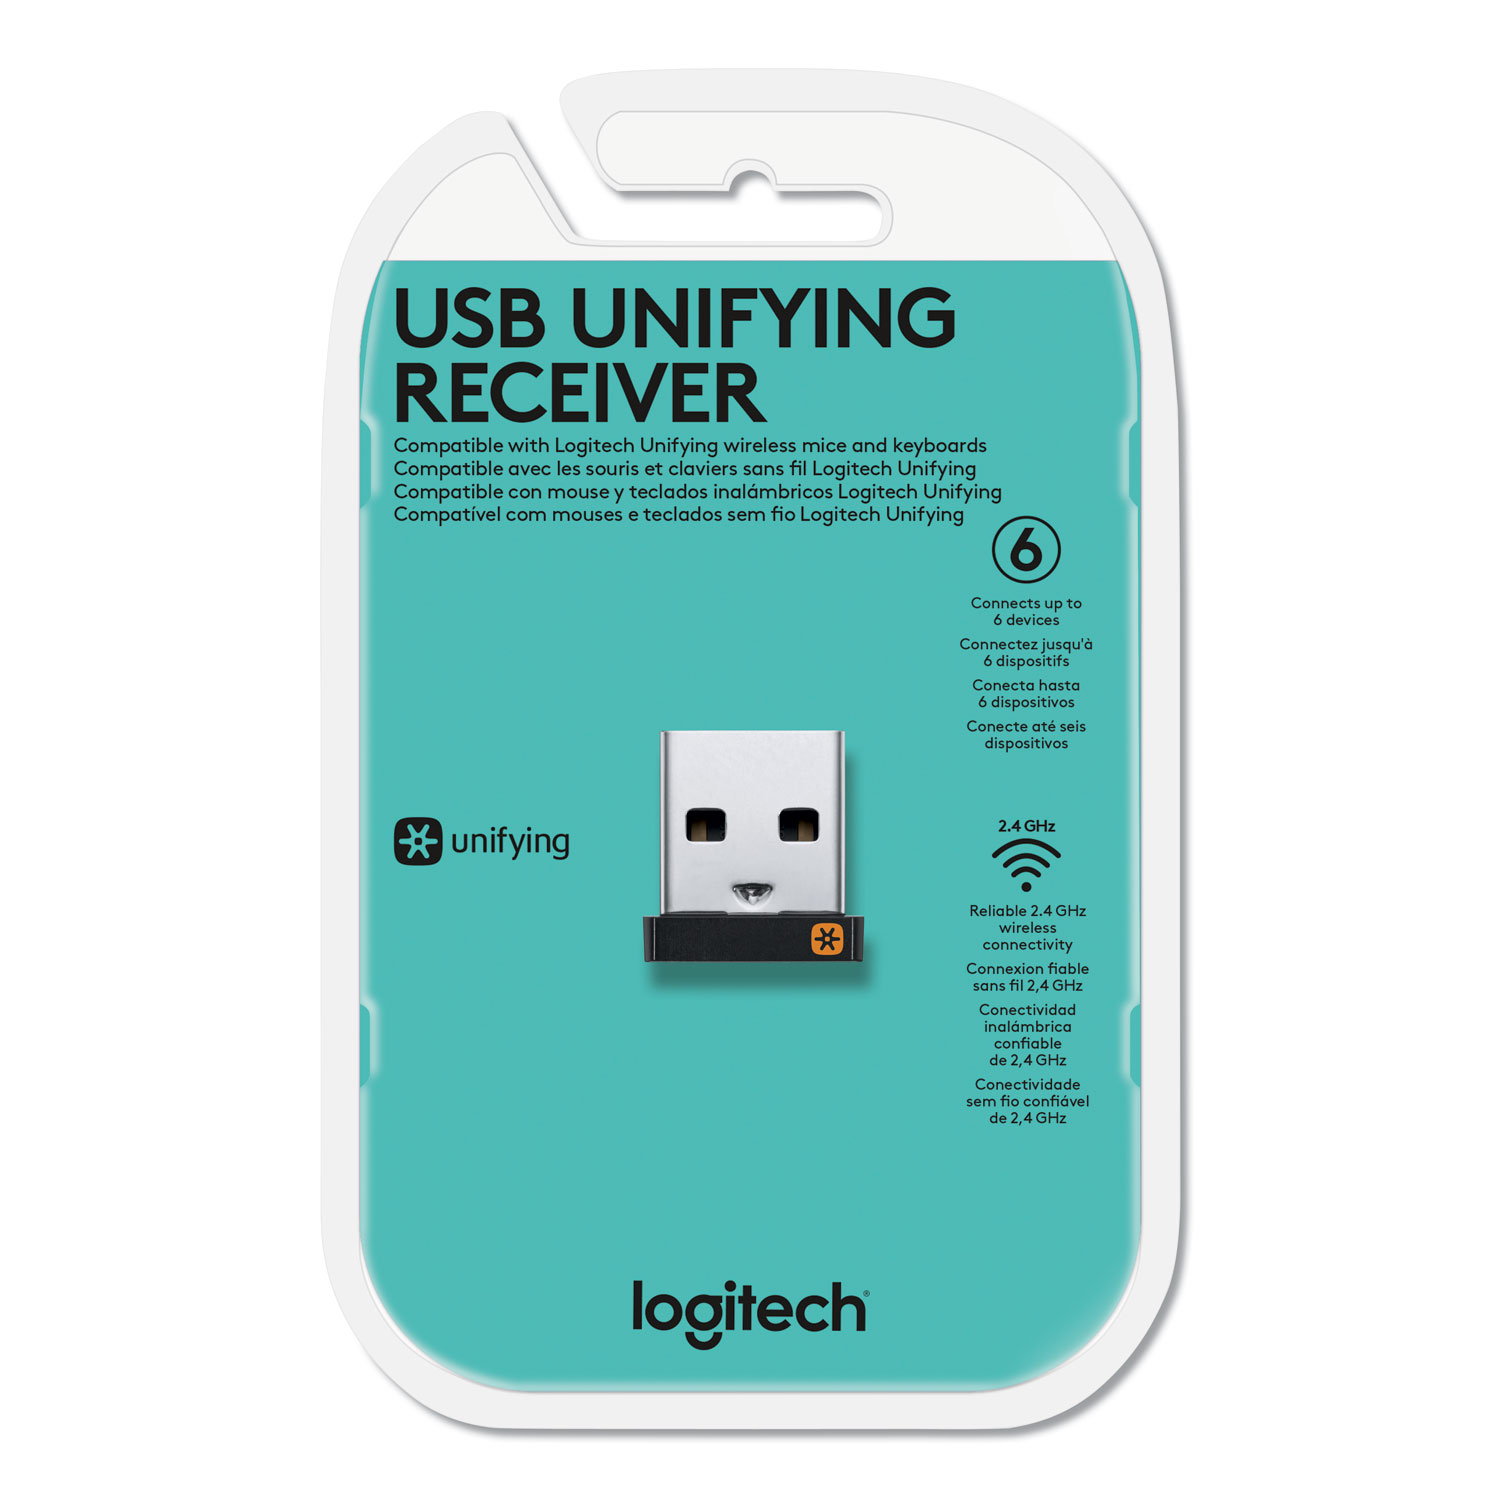 03a1ec6df9a USB Unifying Receiver, Black - Sani-Chem Cleaning Supplies